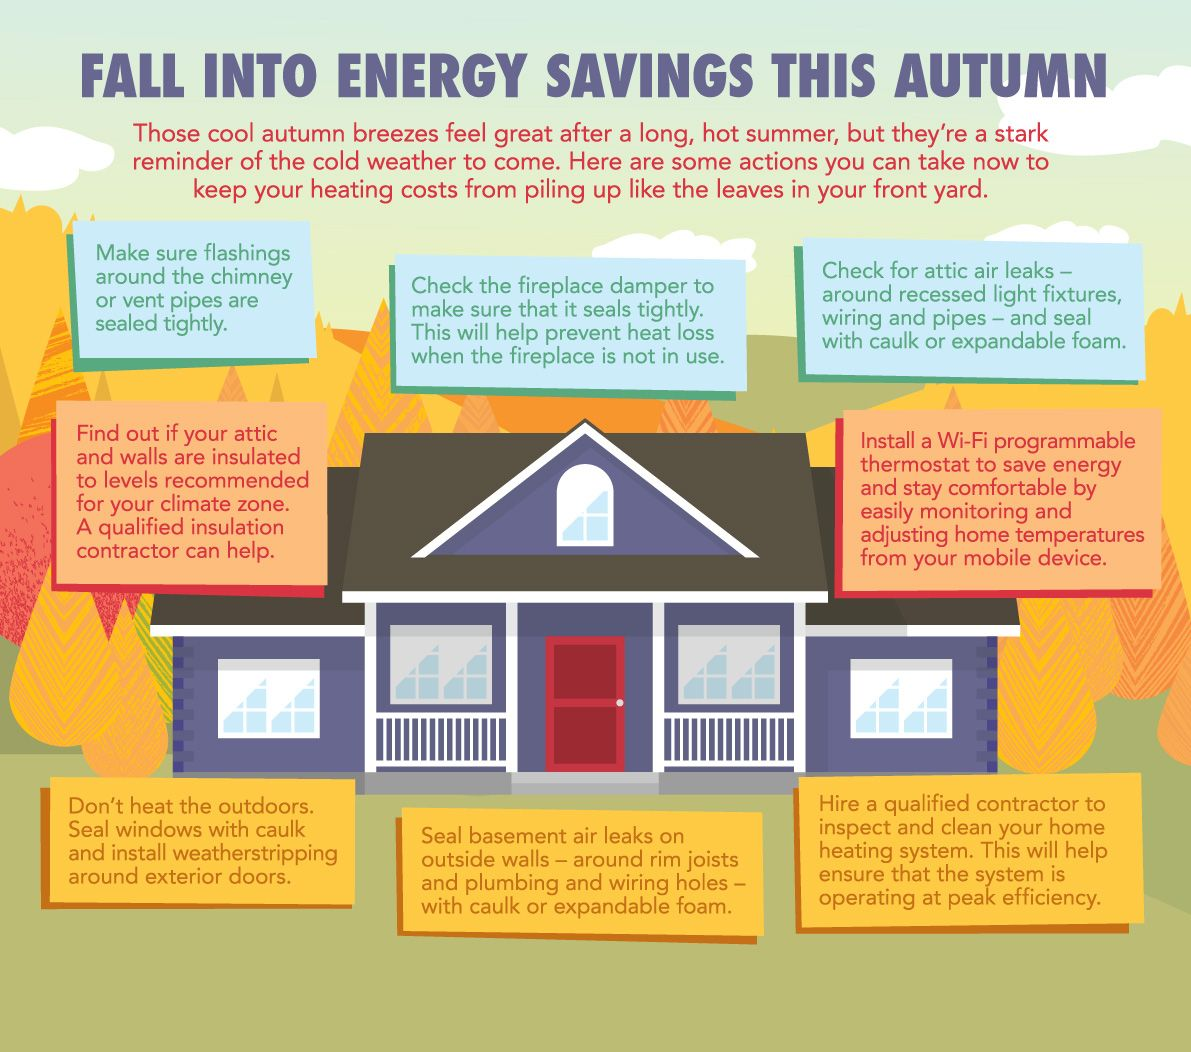 Fall into Energy Savings Here are some actions you can